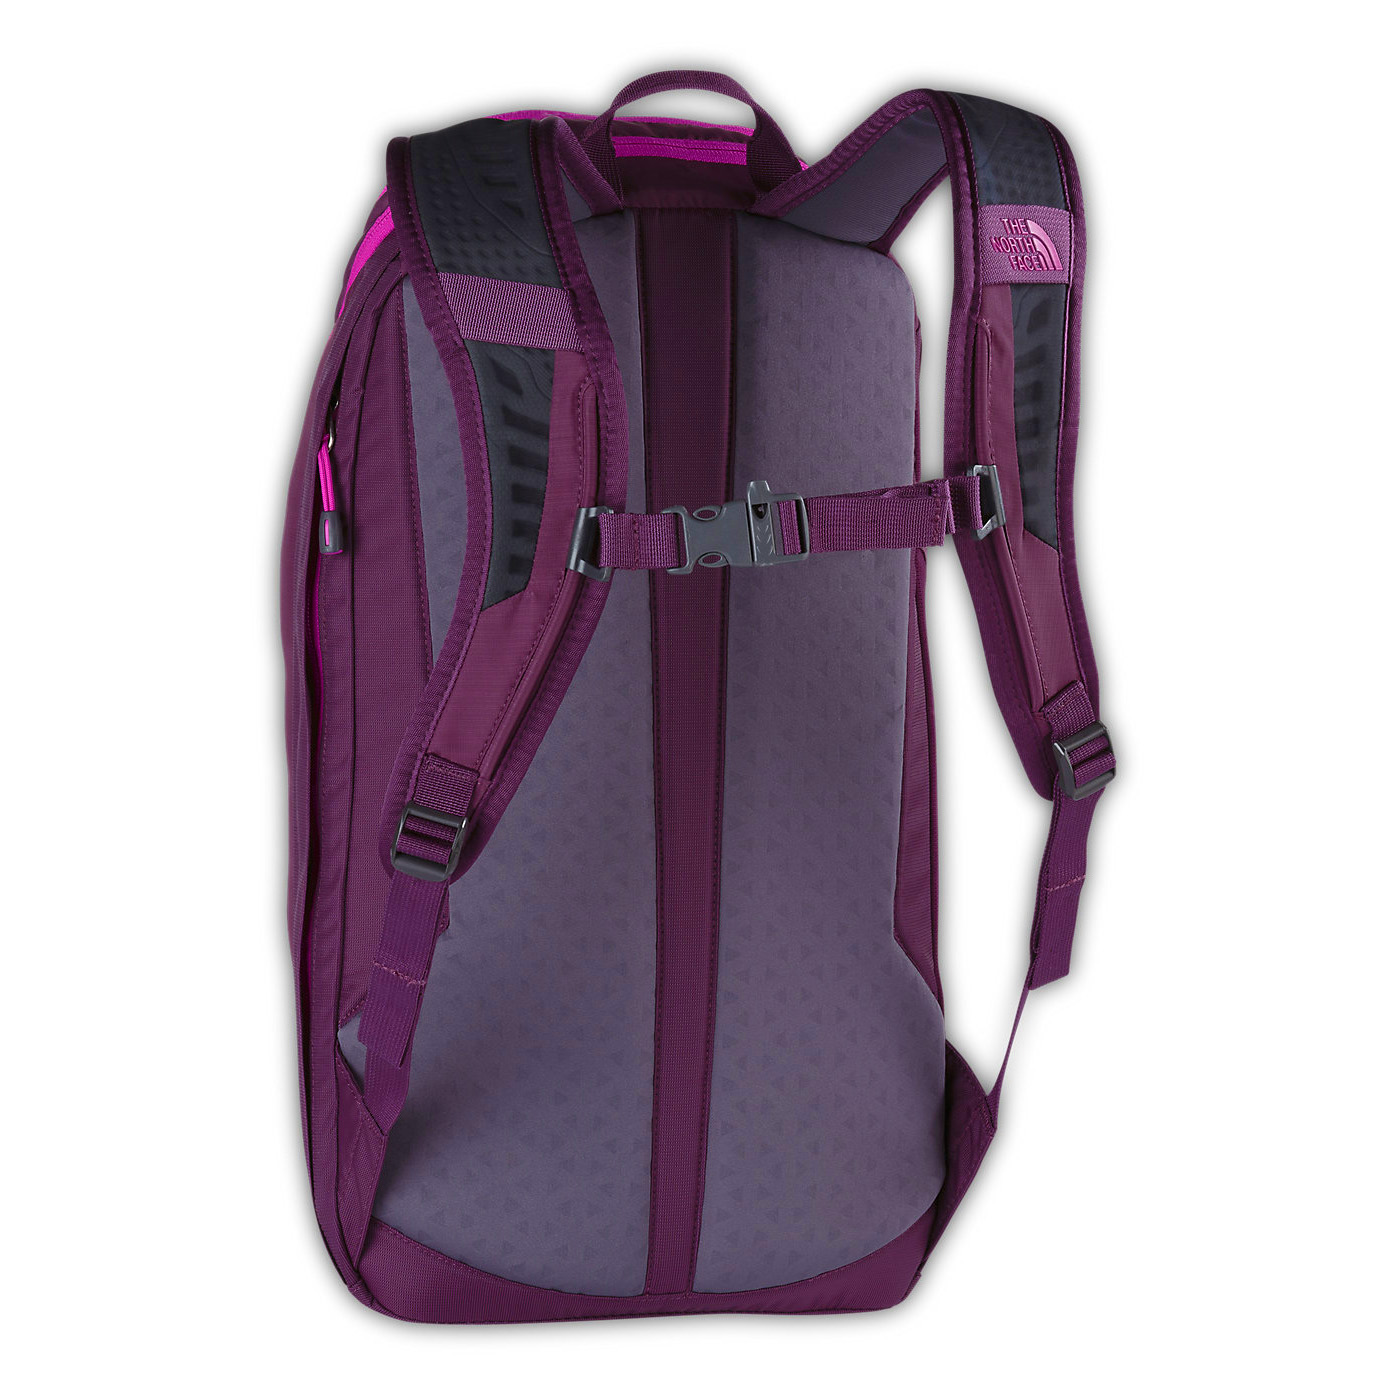 b8bc6d1366 Sac à dos The North Face Pinyon Prune Purple Femme